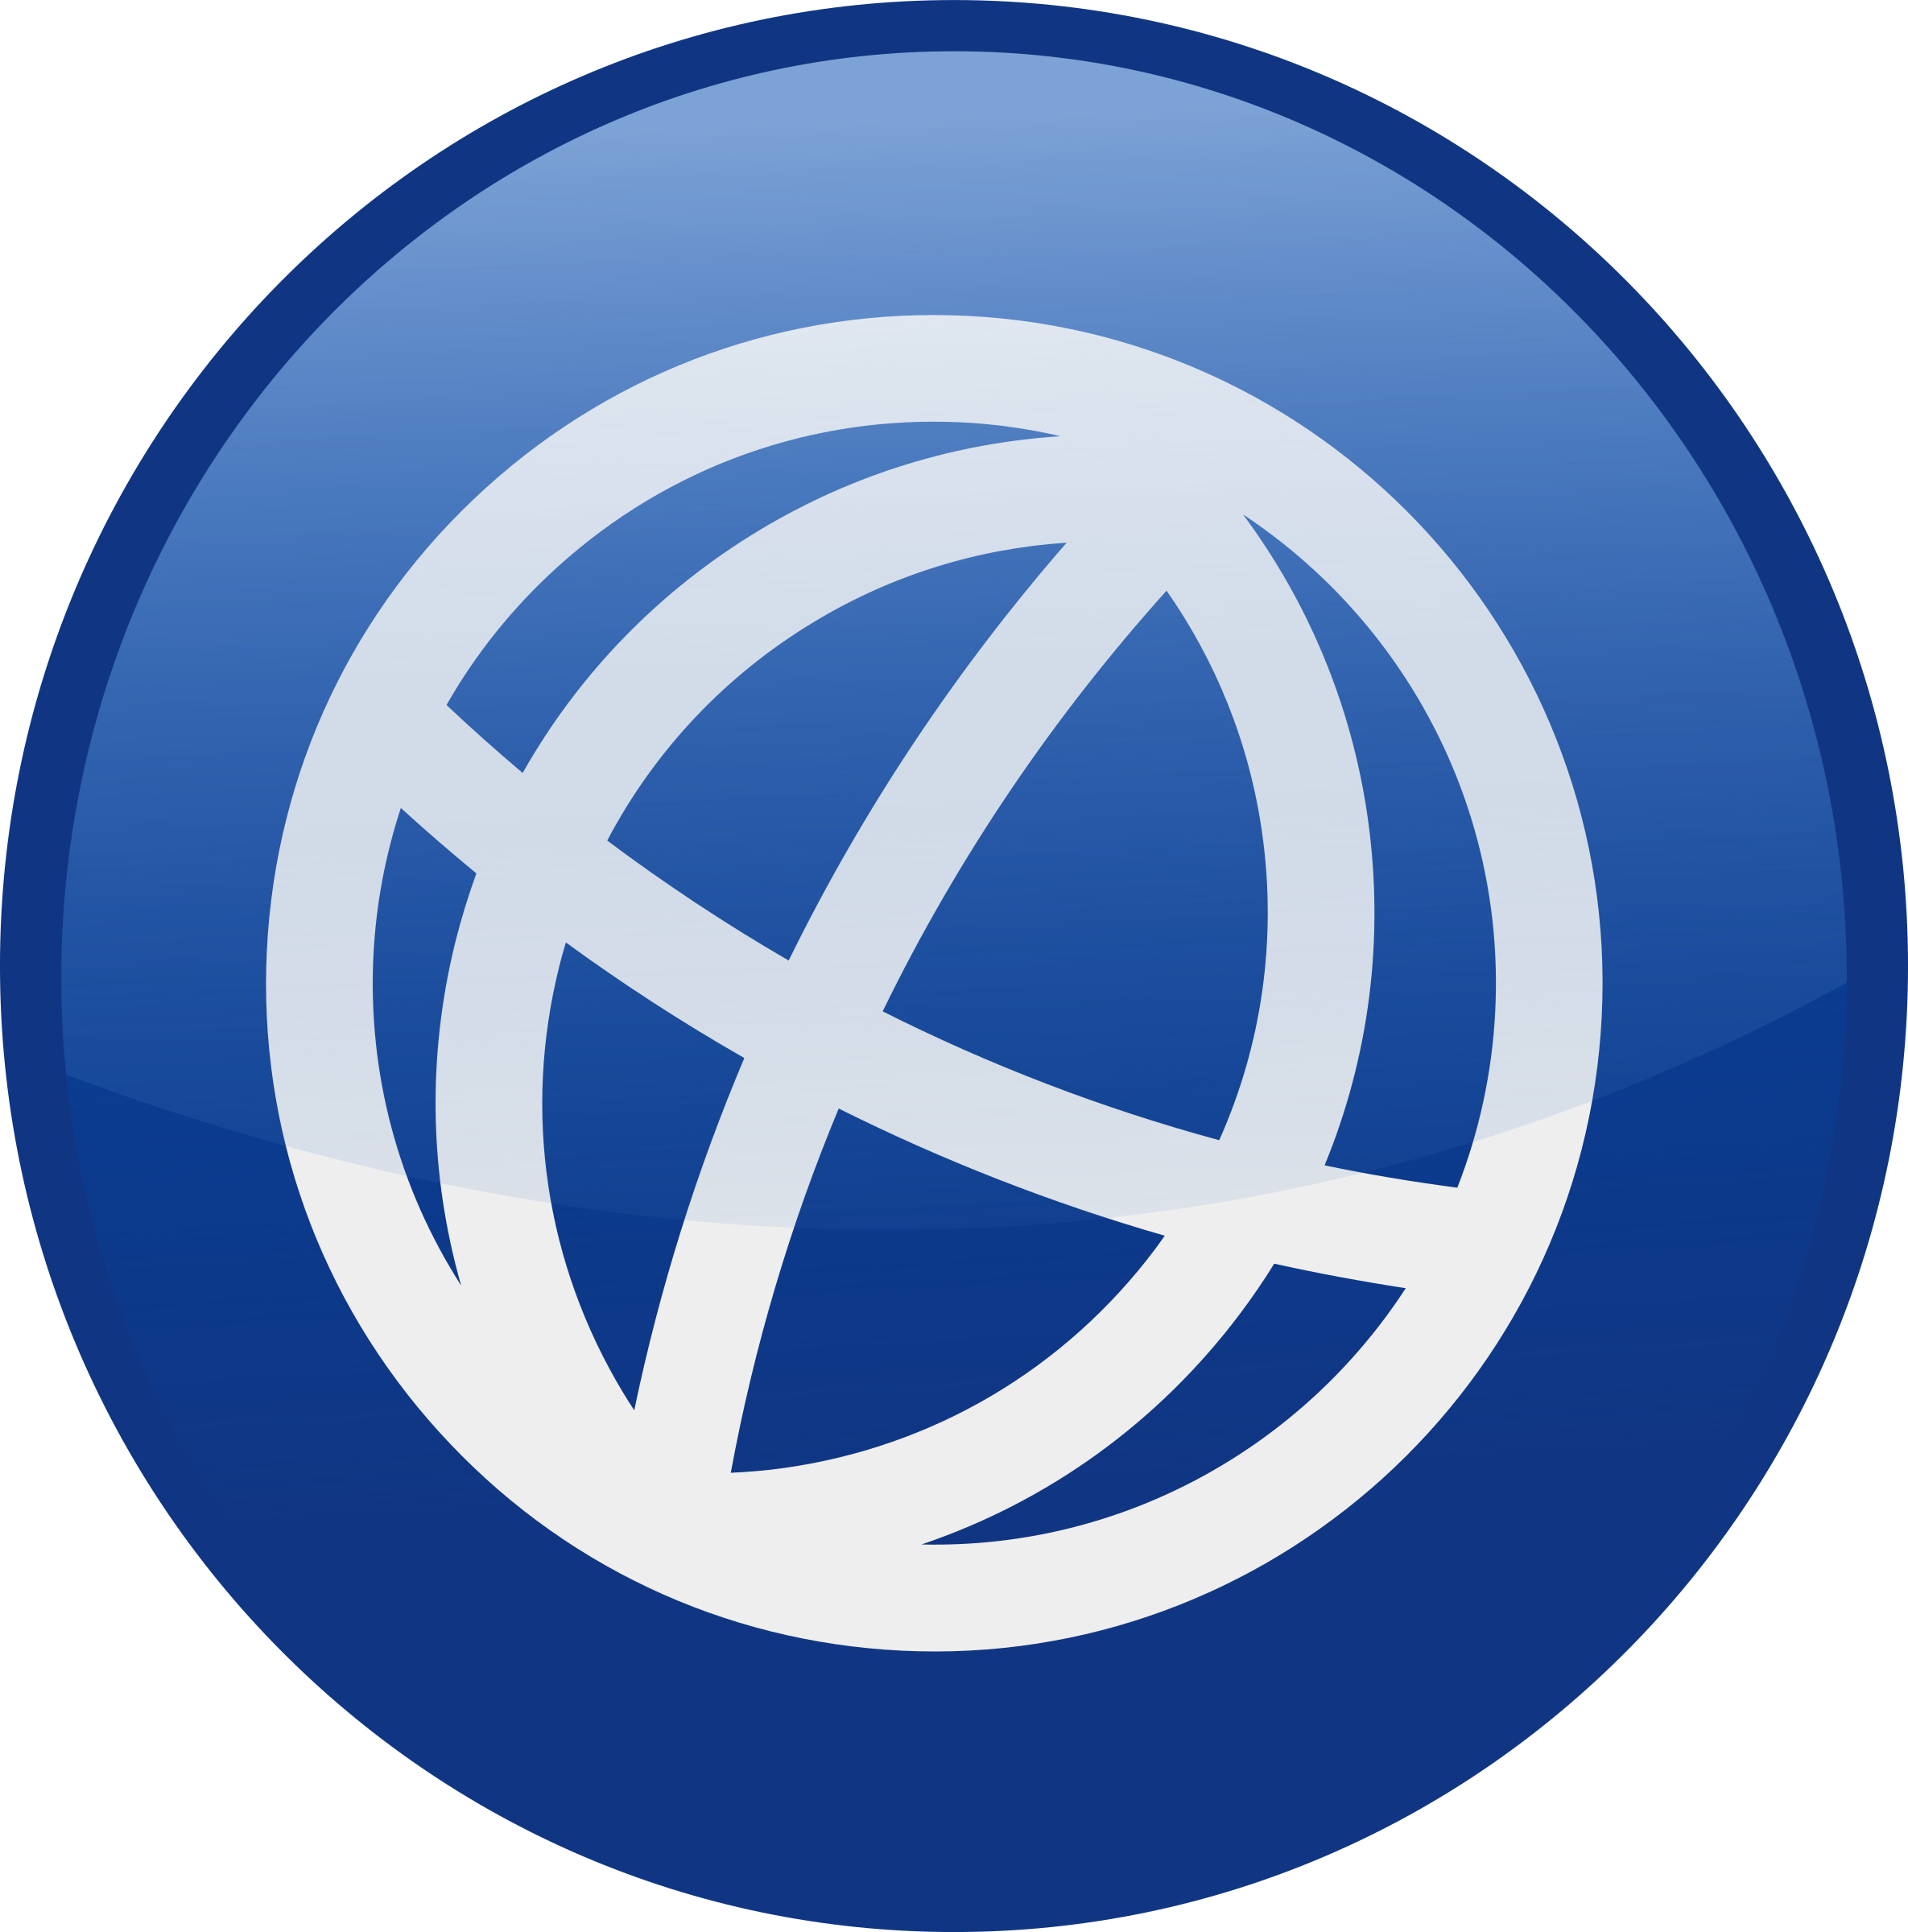 Blue website icon png. Globe icons free and